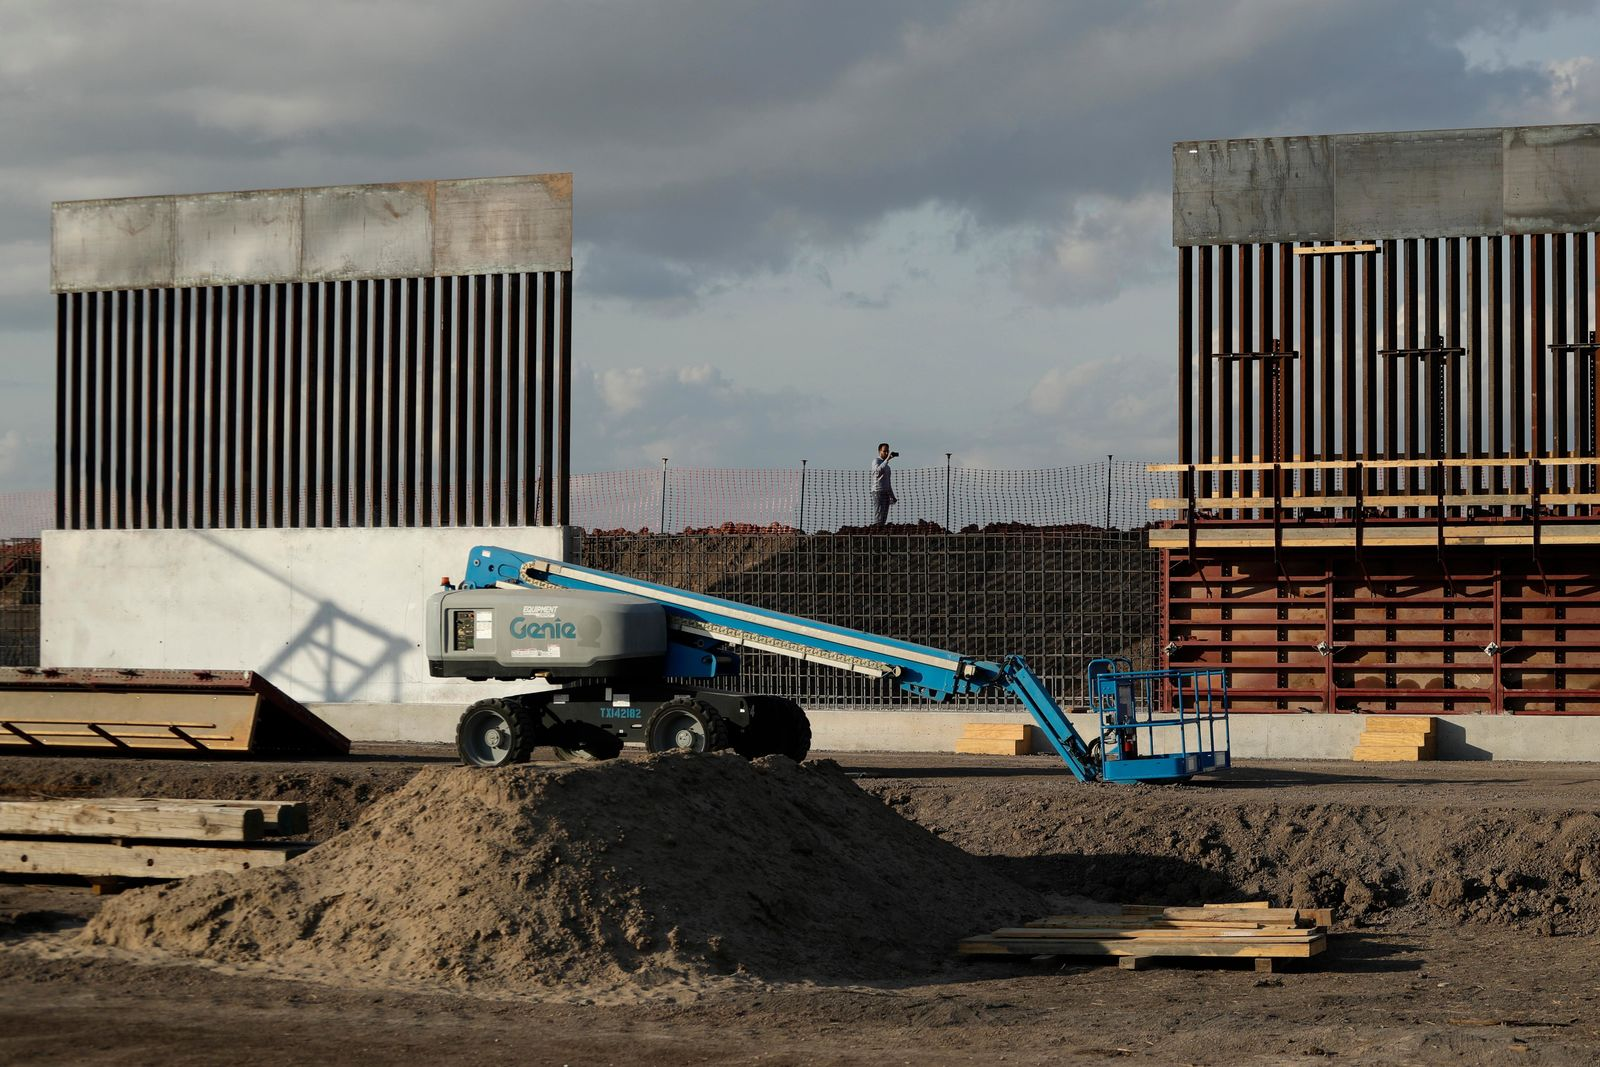 FILE - In this Nov. 7, 2019, file photo, the first panels of levee border wall are seen at a construction site along the U.S.-Mexico border, in Donna, Texas. Major construction projects moving forward along the U.S. borders with Canada and Mexico amid the coronavirus pandemic are raising fears workers could spread the sickness within nearby communities. (AP Photo/Eric Gay, File)